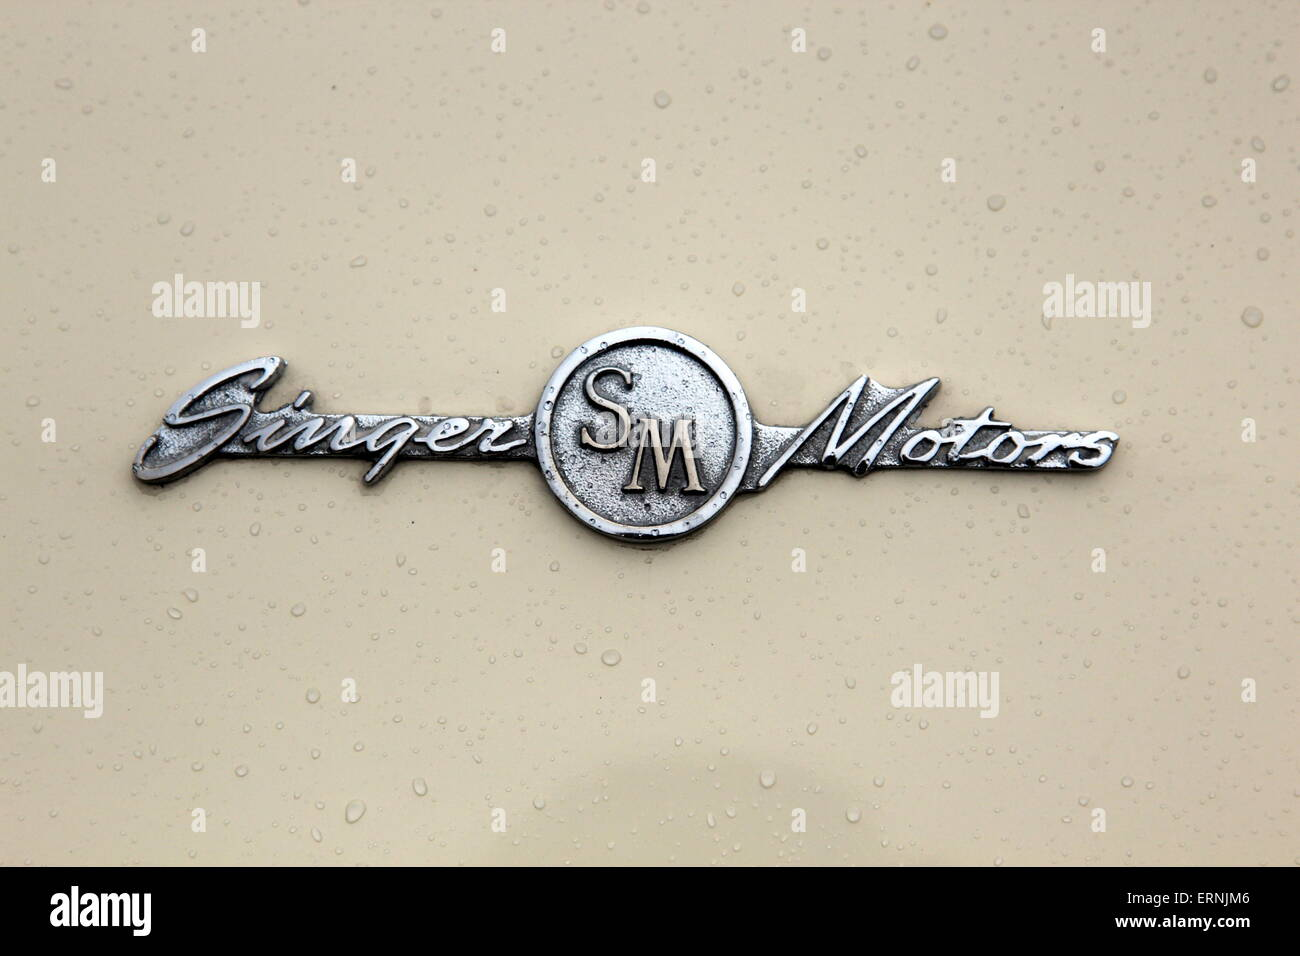 Singer Motors logo on a car - Stock Image